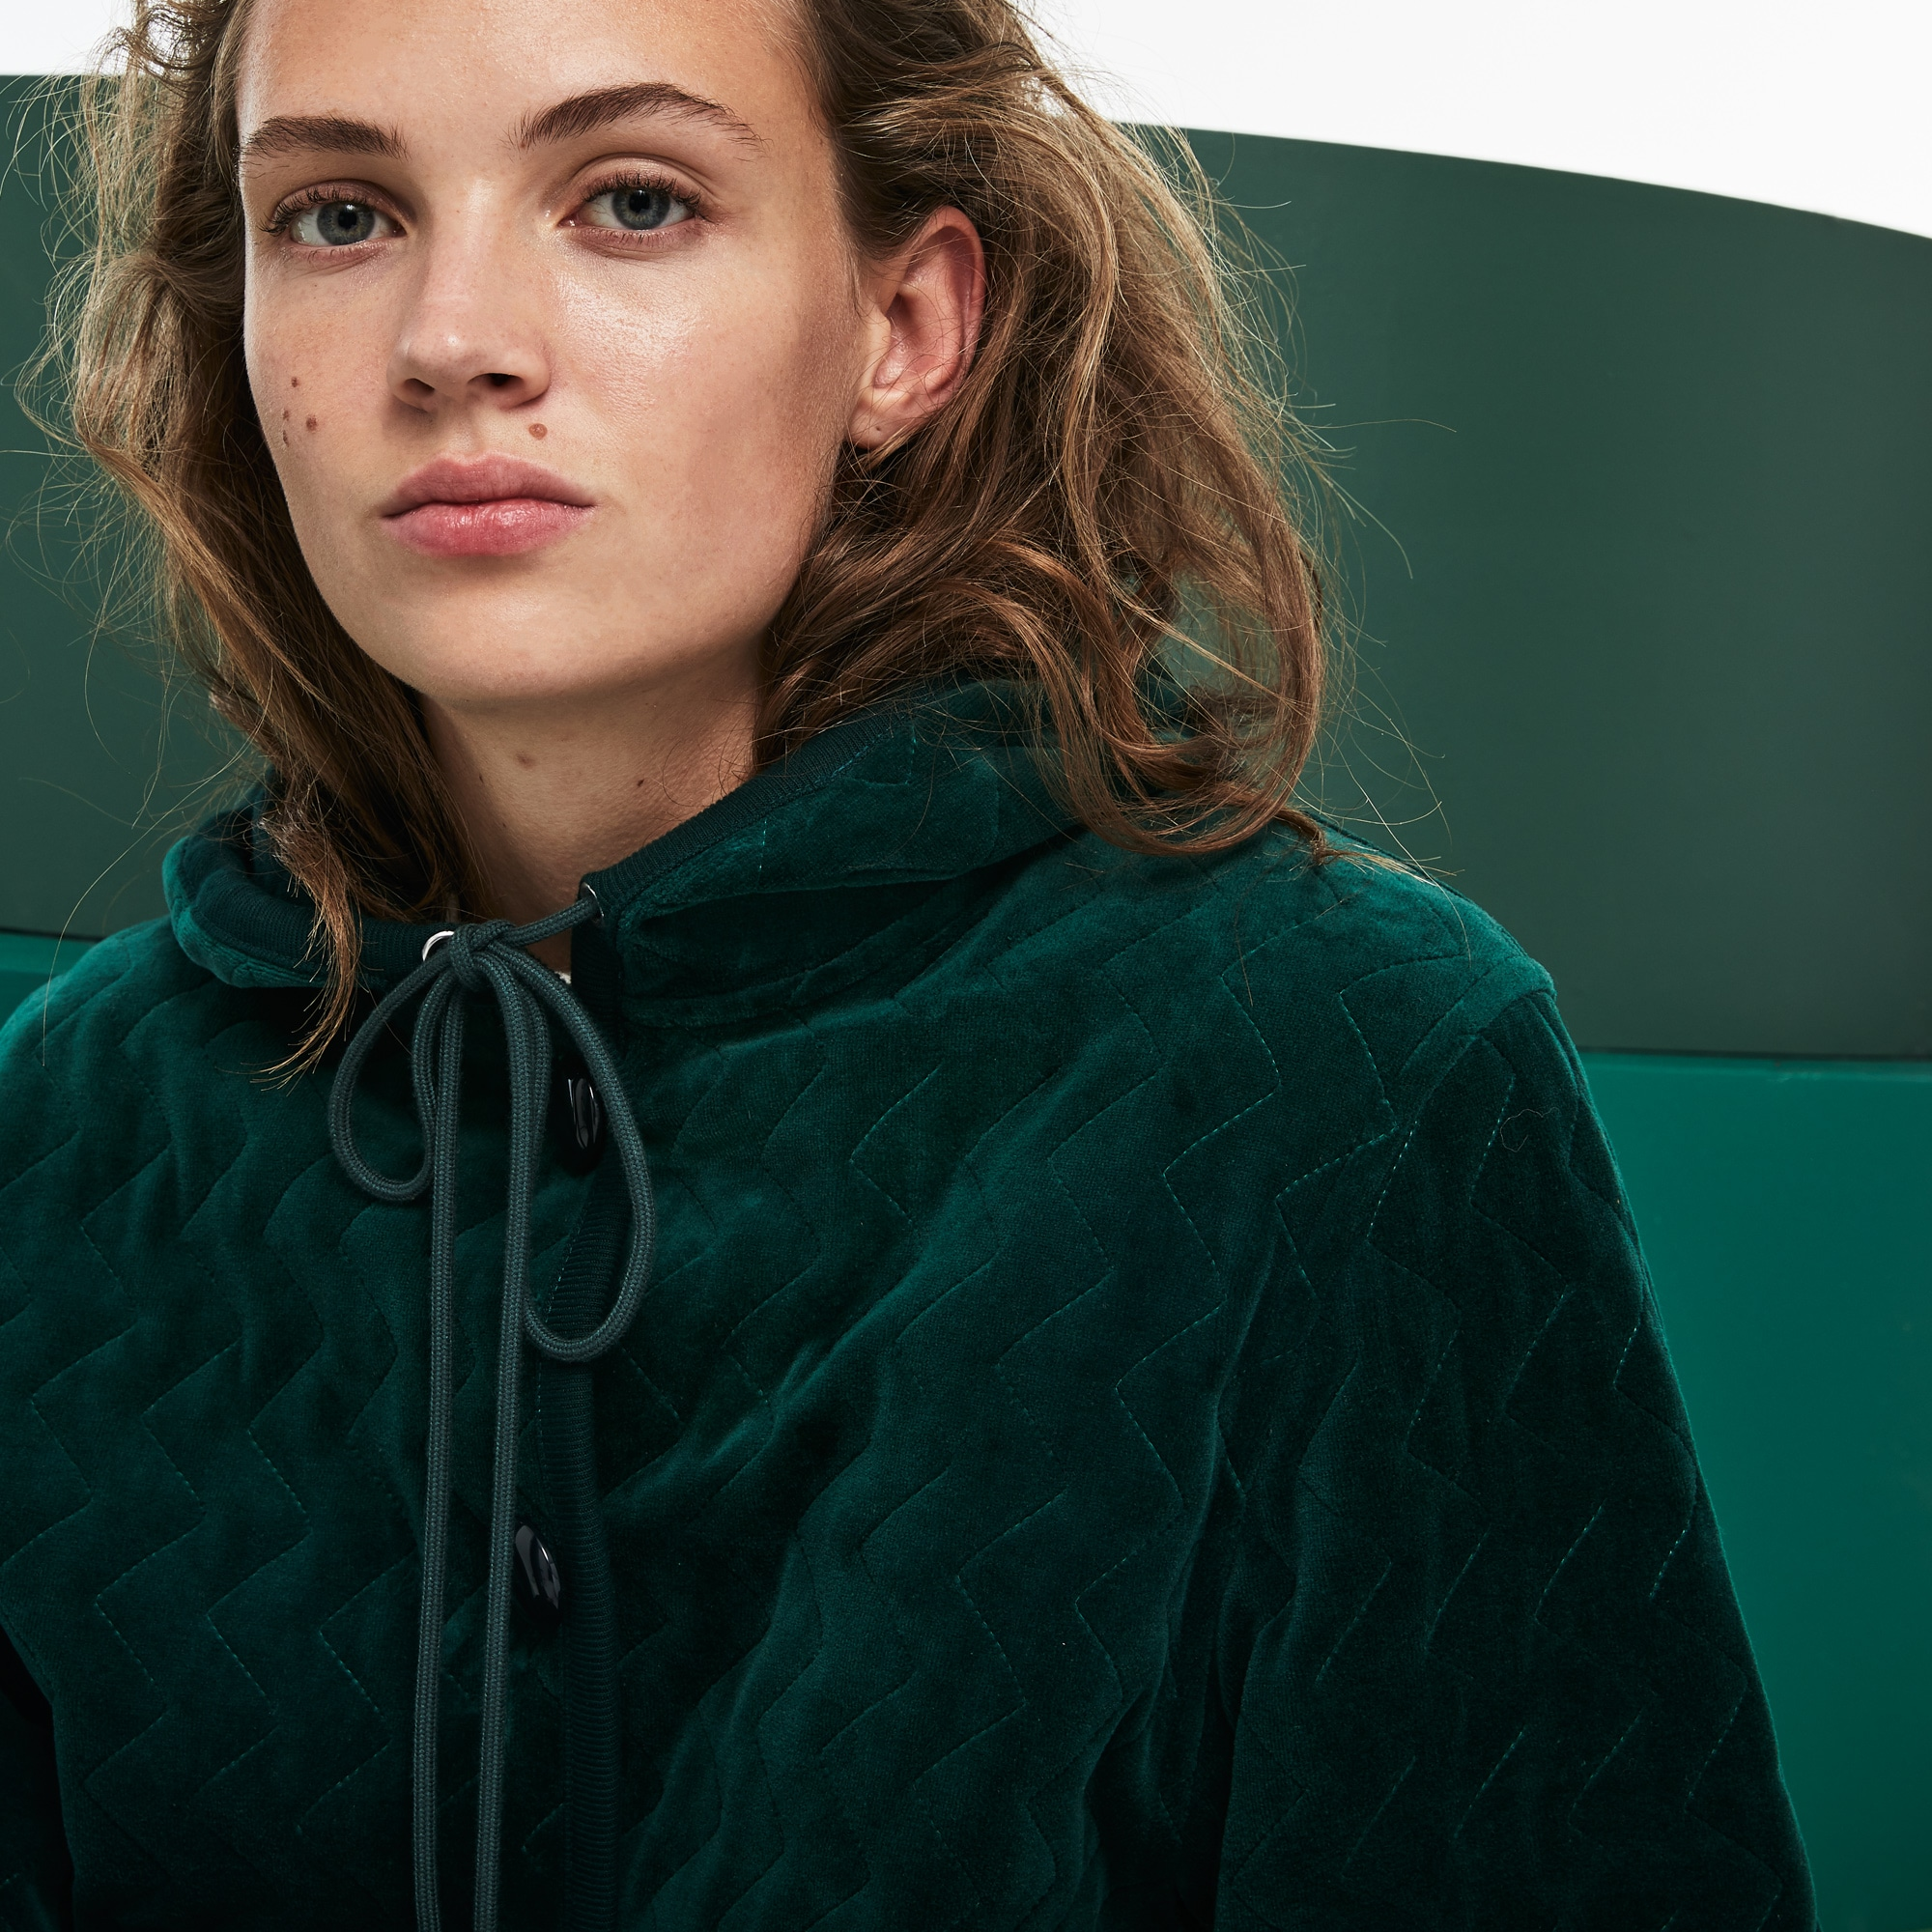 Women's Fashion Show Hooded Oversized Quilted Velour Sweatshirt